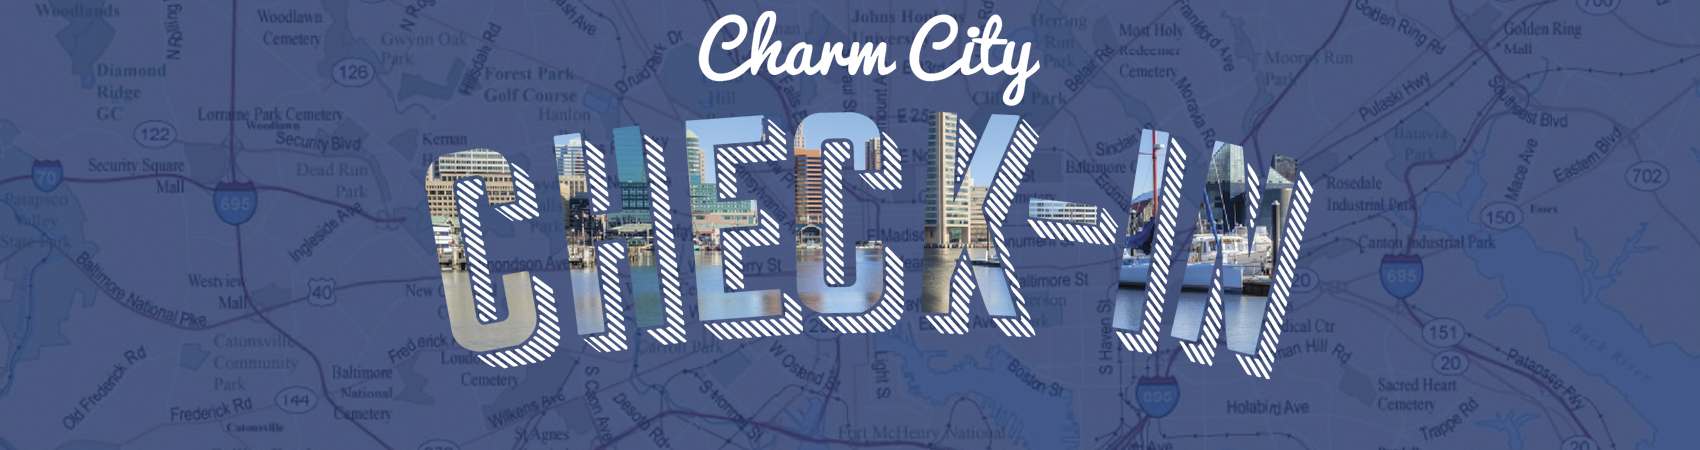 Charm City Check-In